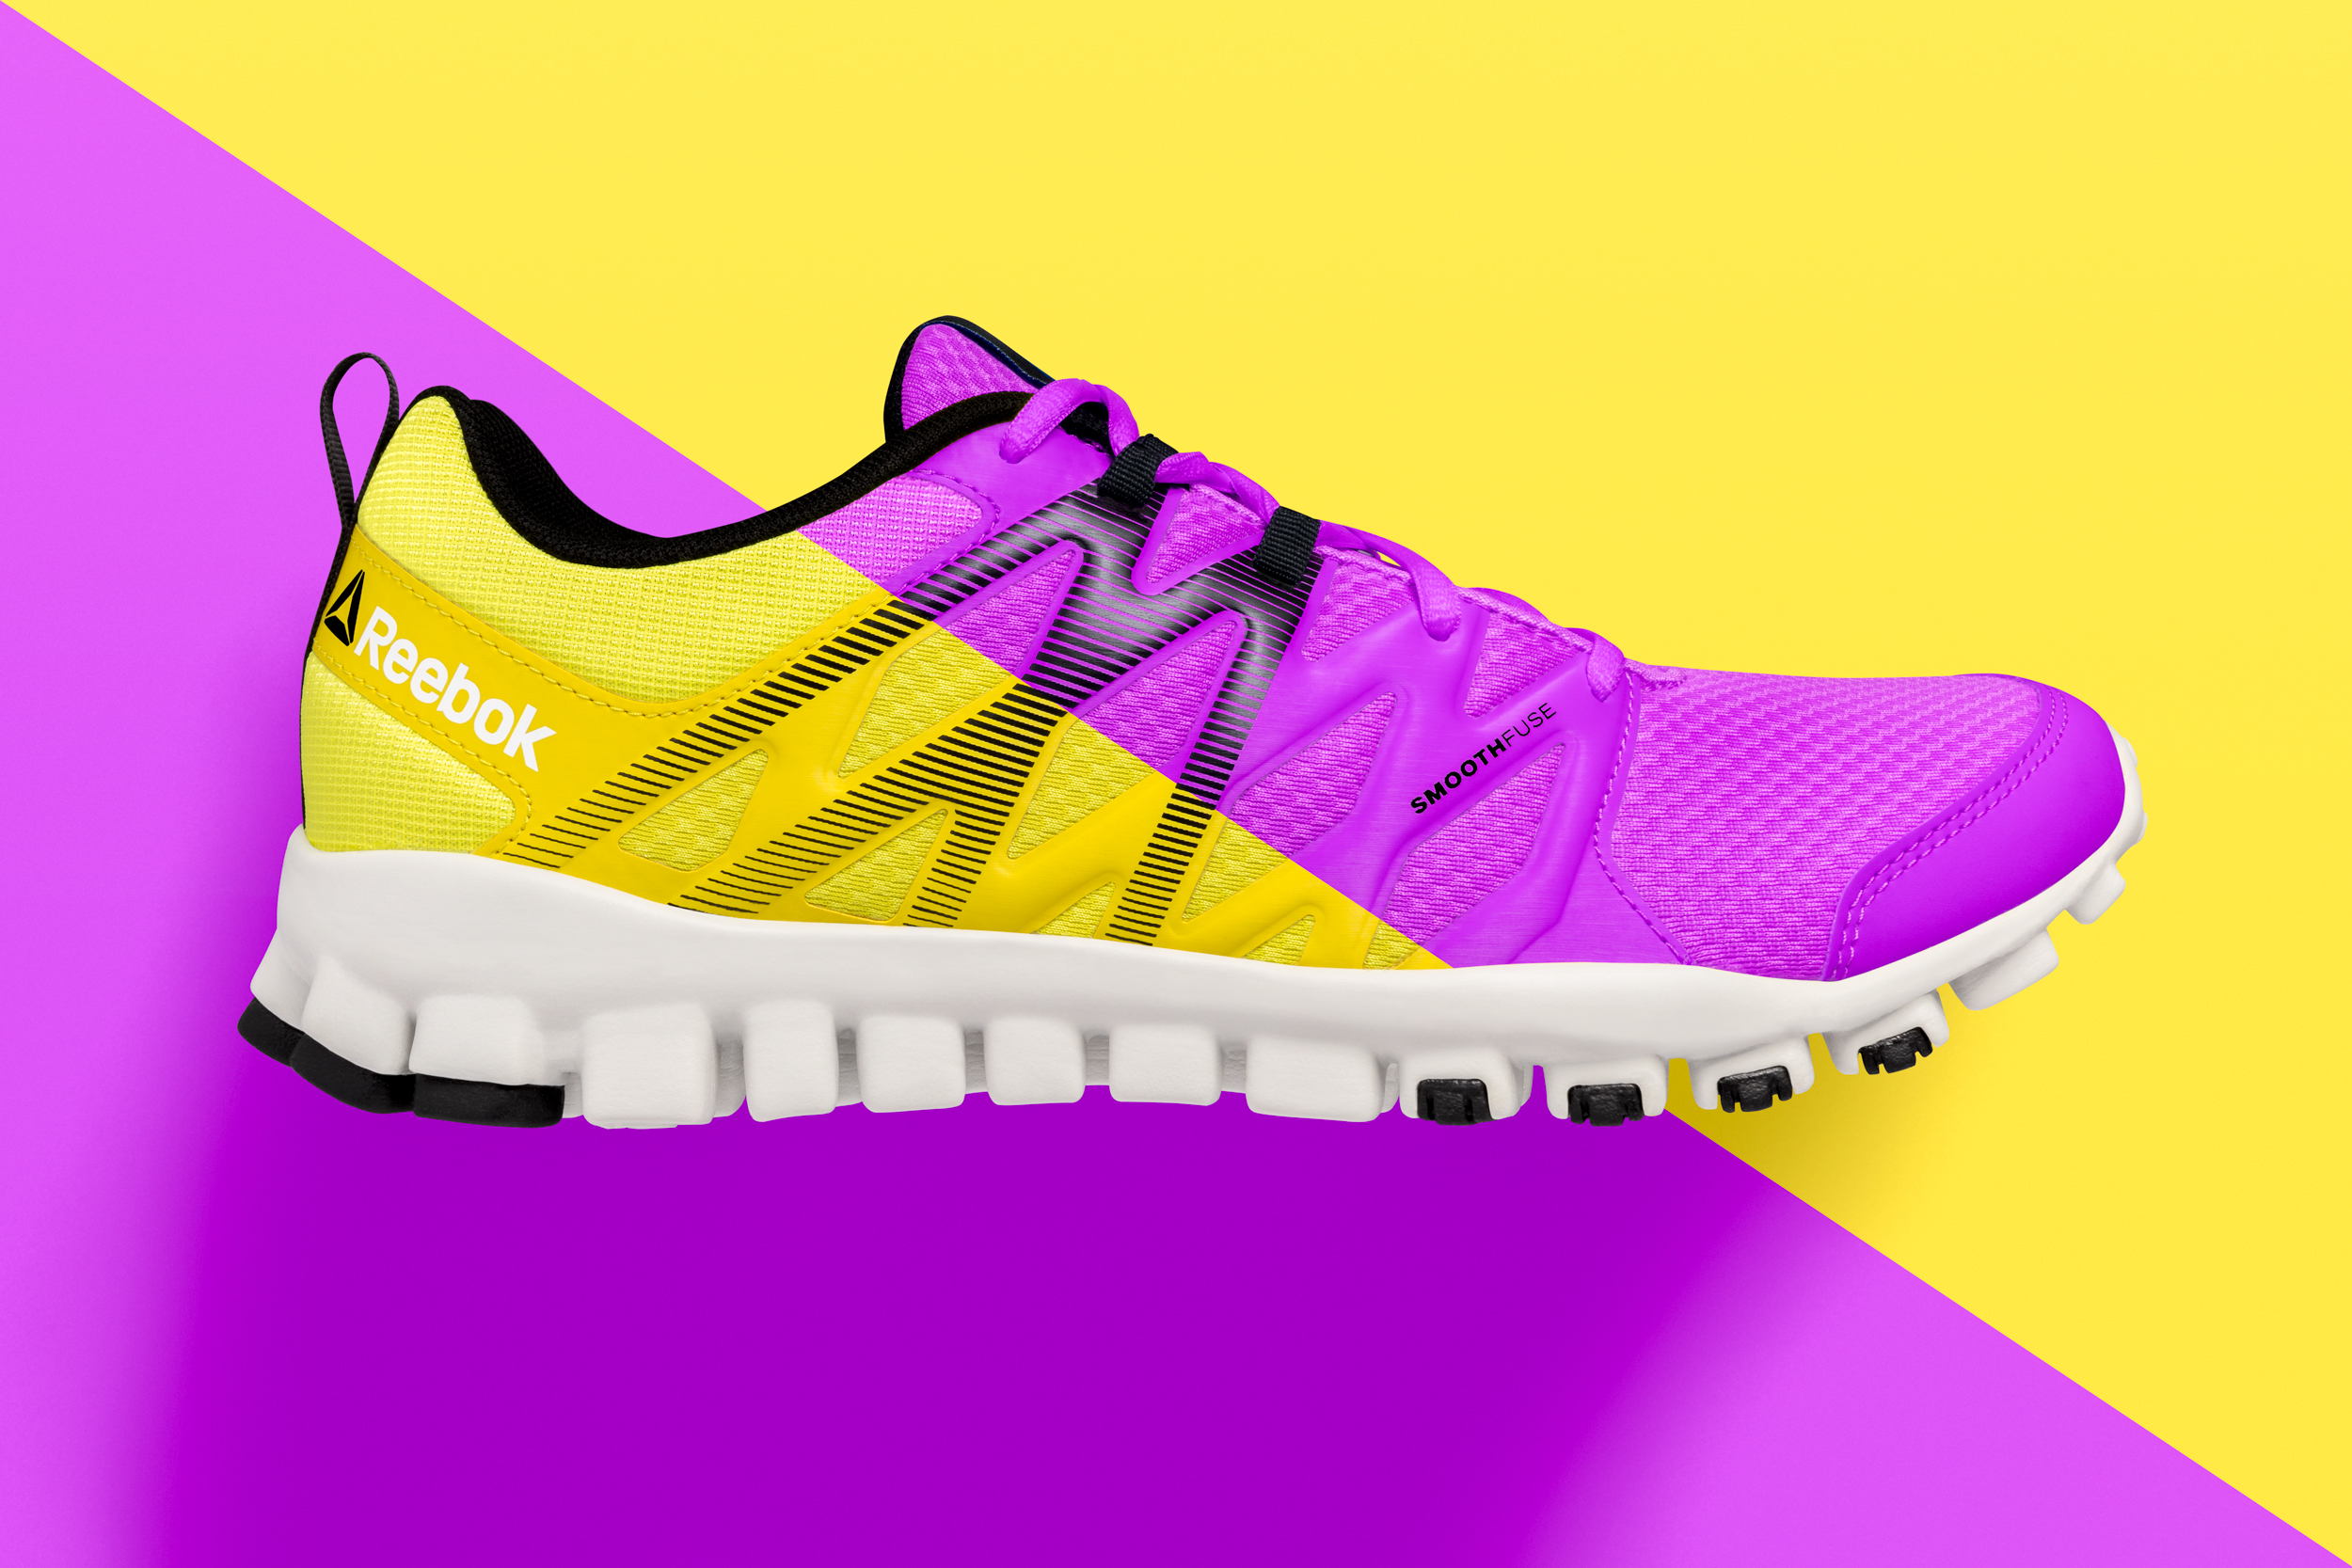 Reebok-Color-Mix-for_Web.jpg